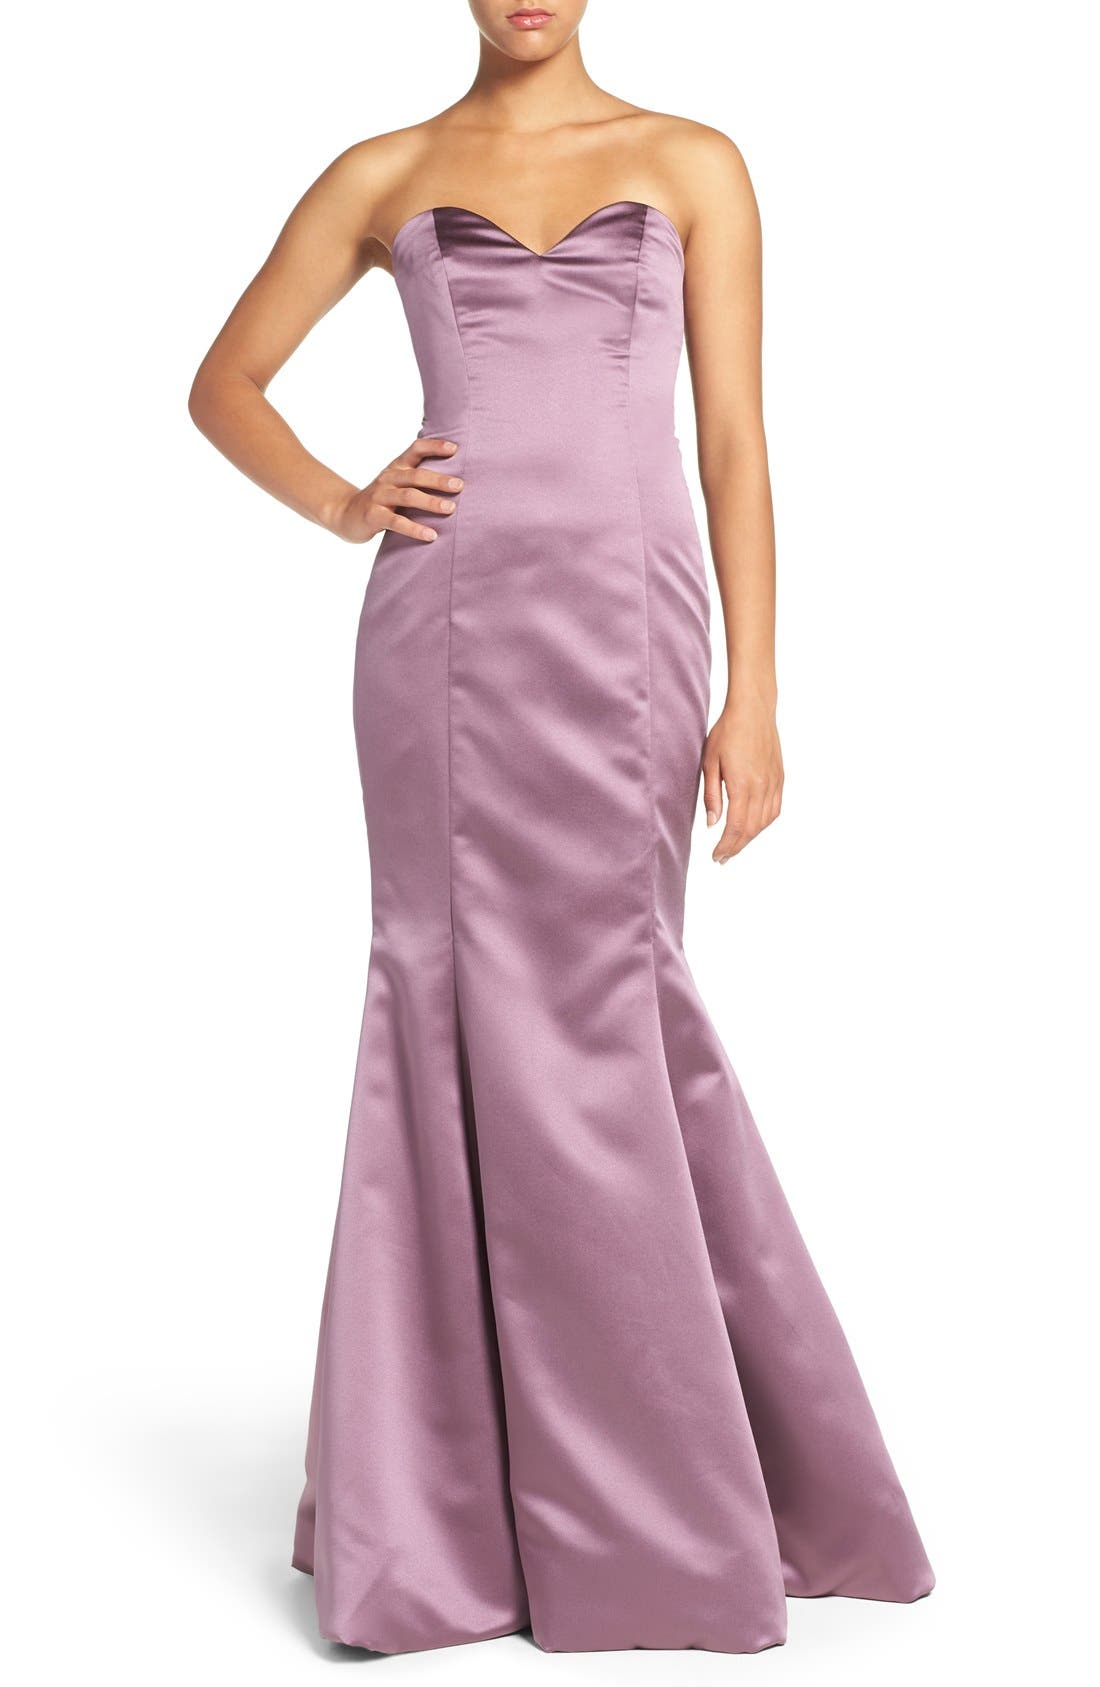 Alternate Image 1 Selected - Hayley Paige Occasions Strapless Satin Trumpet Gown